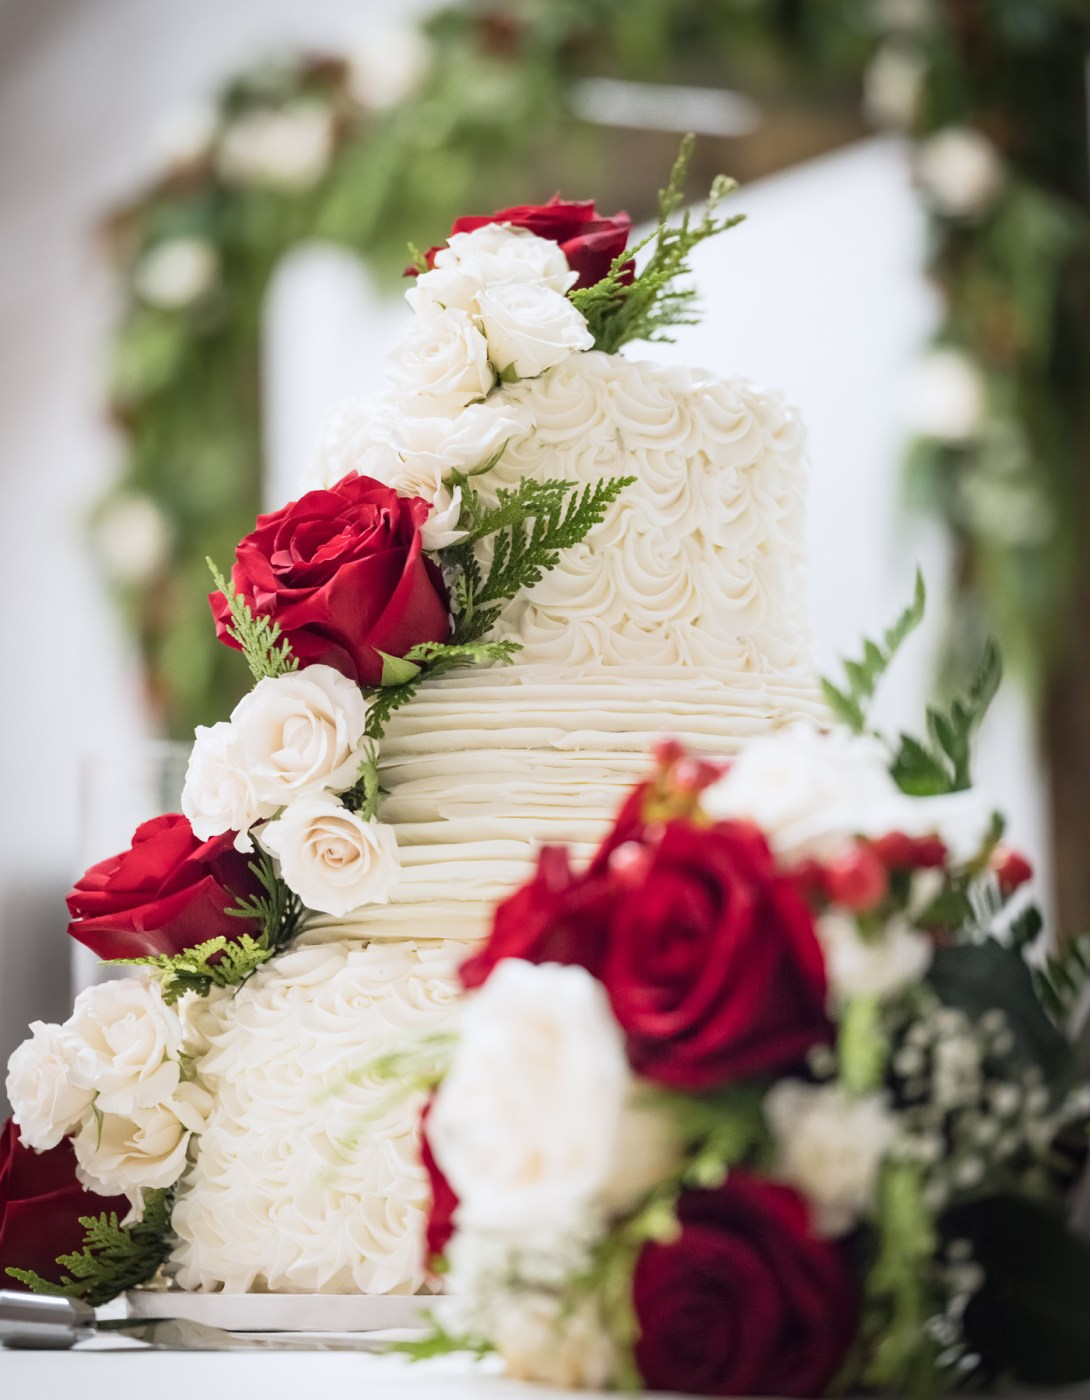 Wedding Cake Red Roses Greenery Shallow Depth of Field